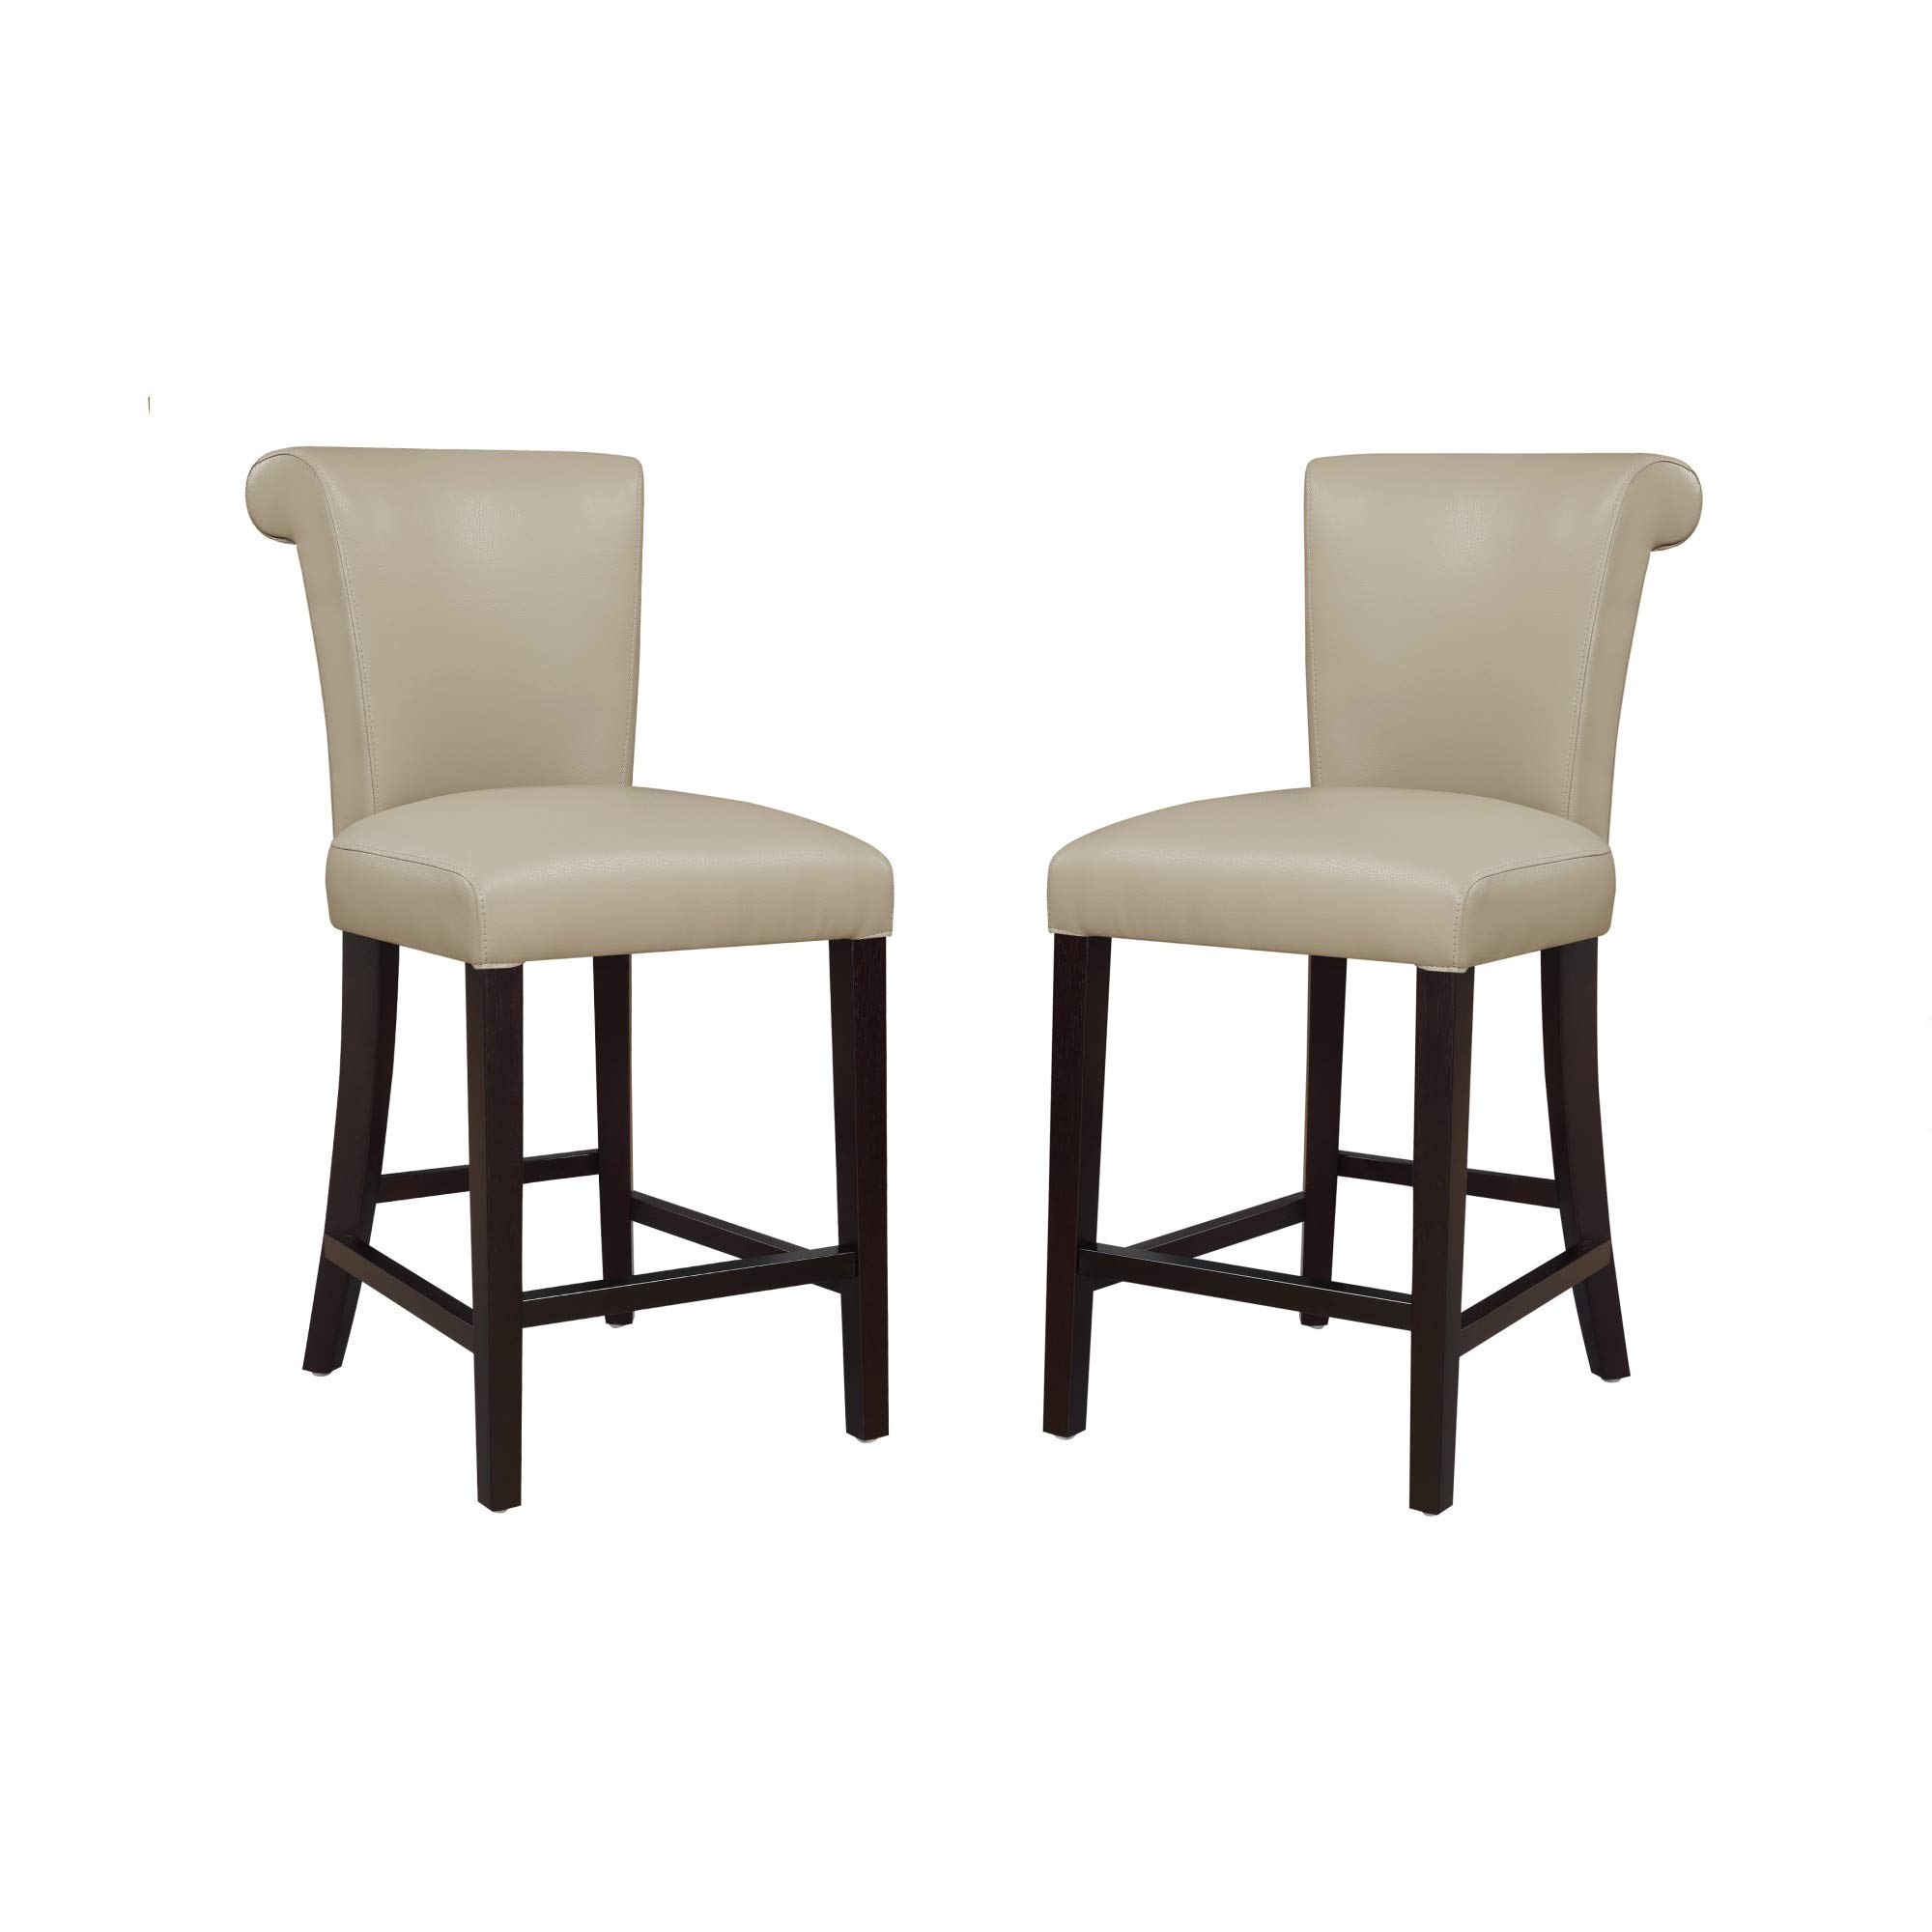 "Livingston III 24"" Bar Stool in Smokey Taupe with Faux Leather Upholstery And Curved Back, Set of Two, by Artum Hill"